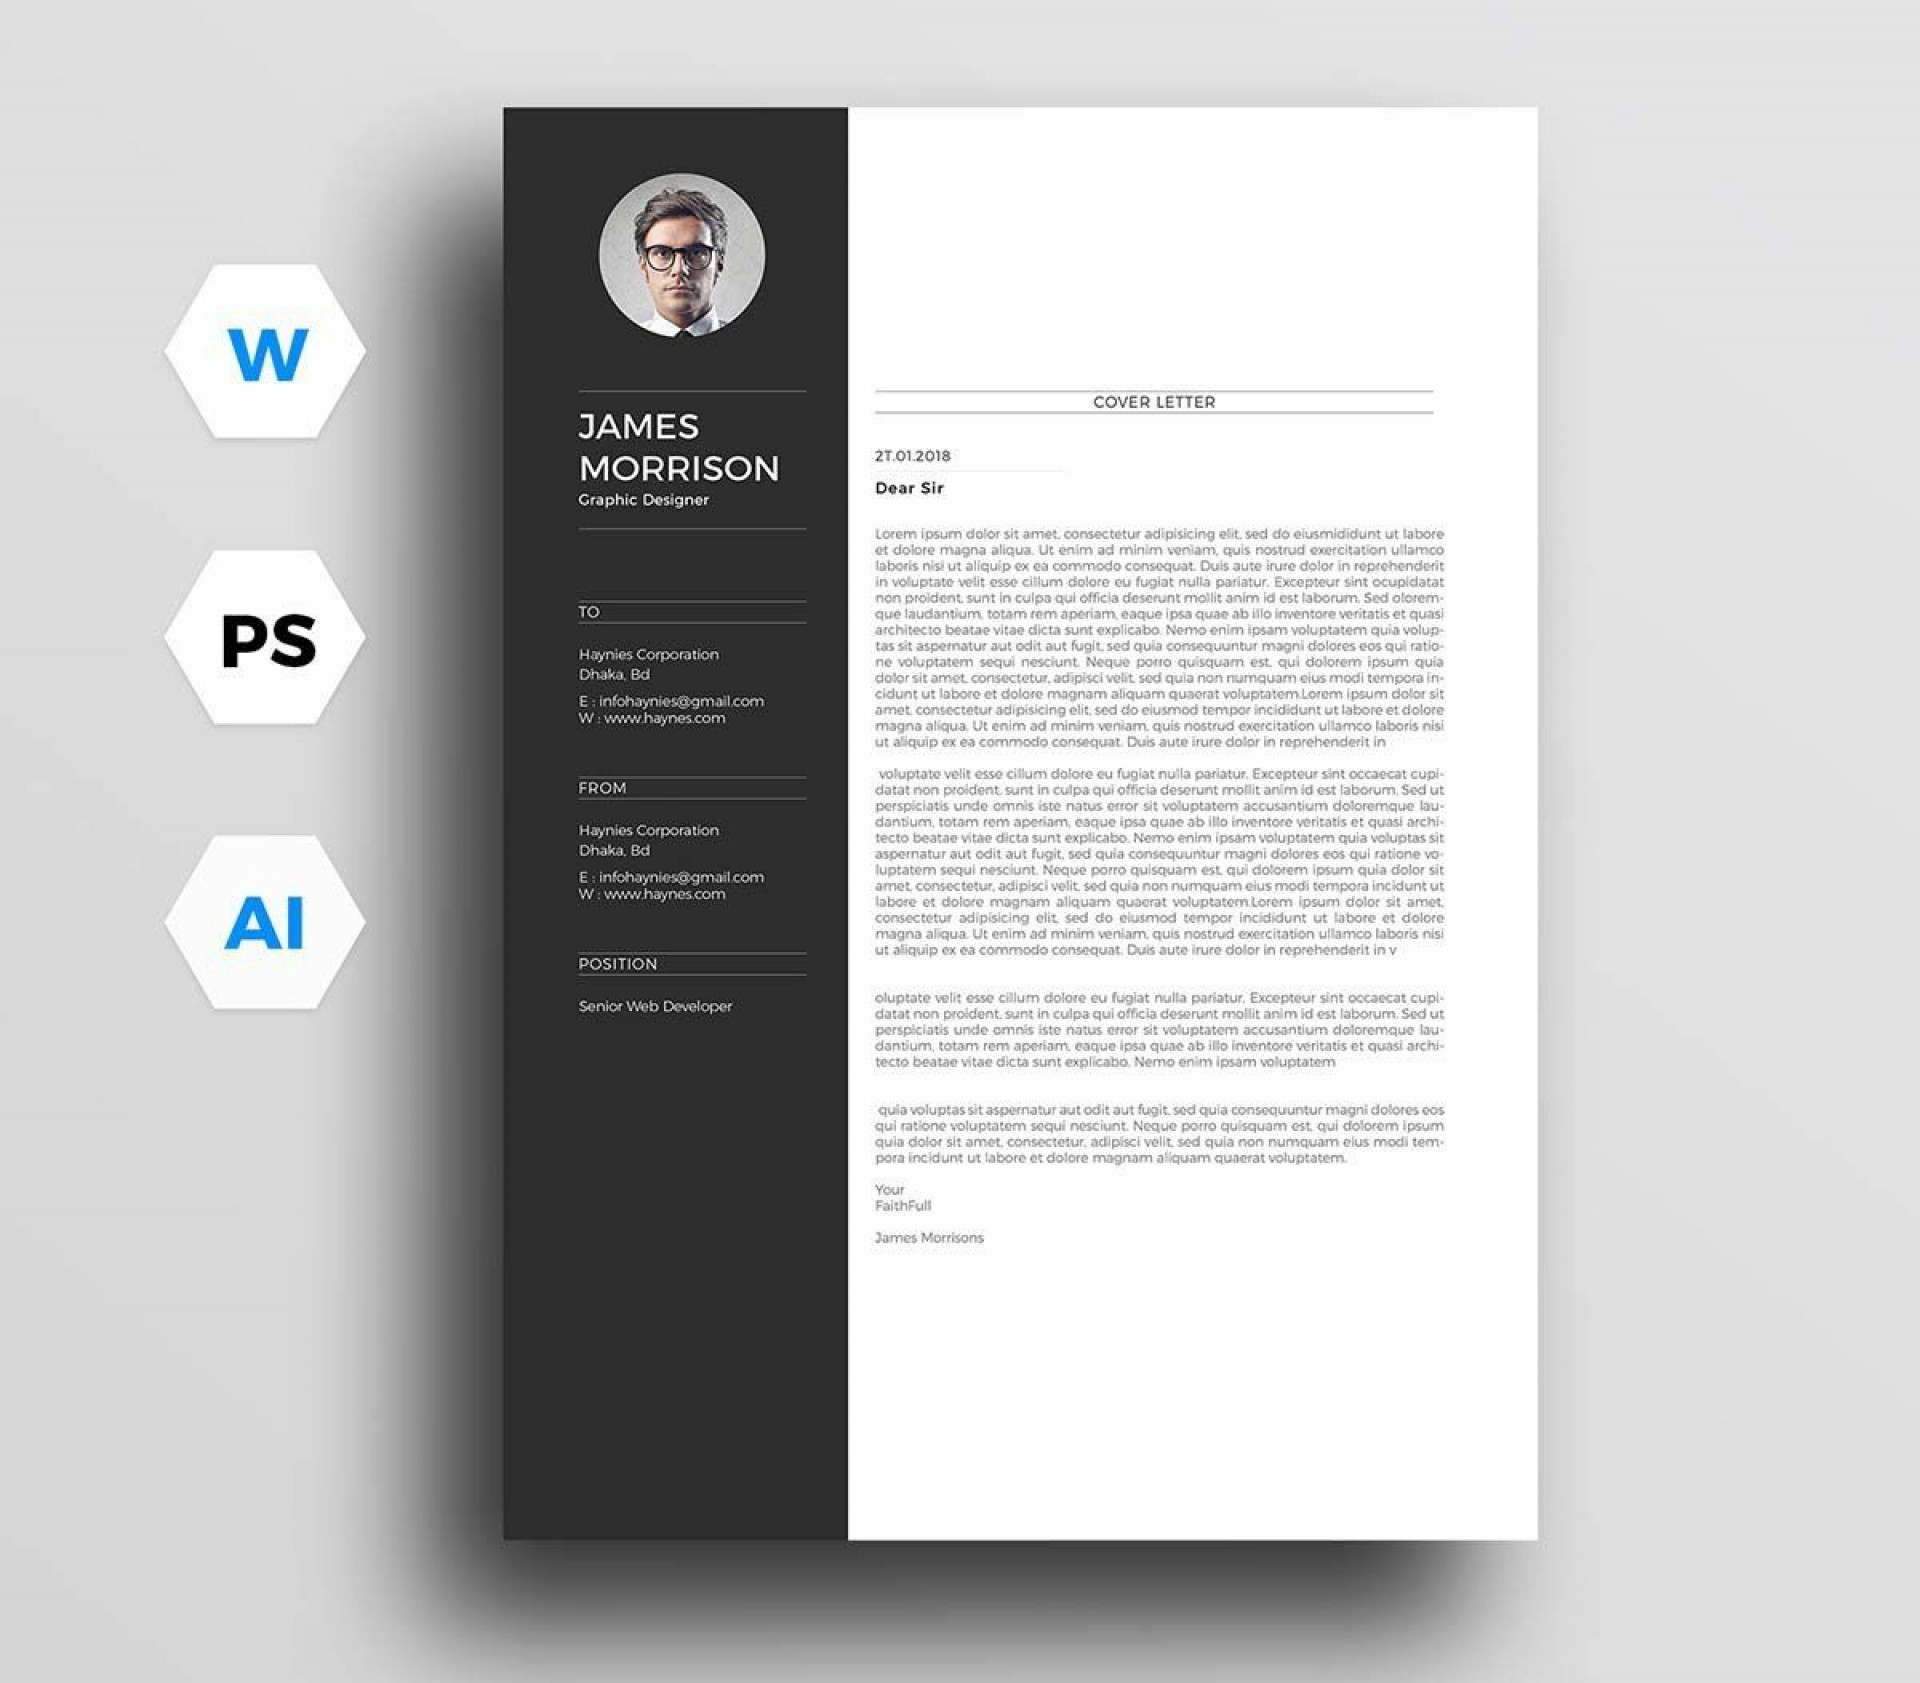 000 Stupendou Cover Letter Template Download Microsoft Word High Resolution  Free Resume1920